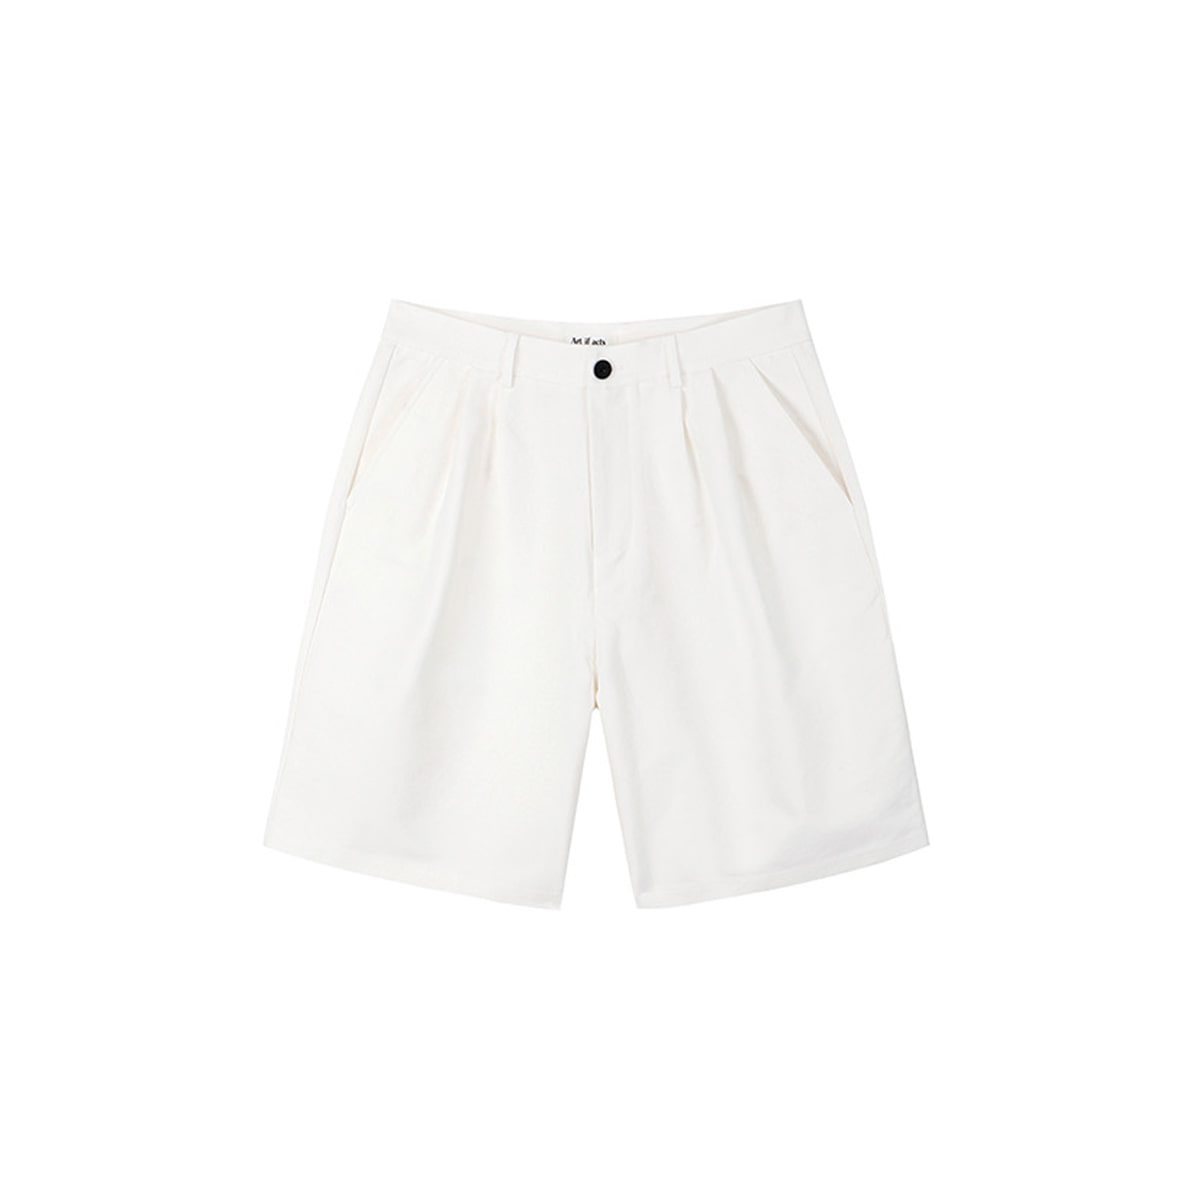 [ART IF ACTS] TWO TUCK BERMUDA SHORTS 'CREAM'